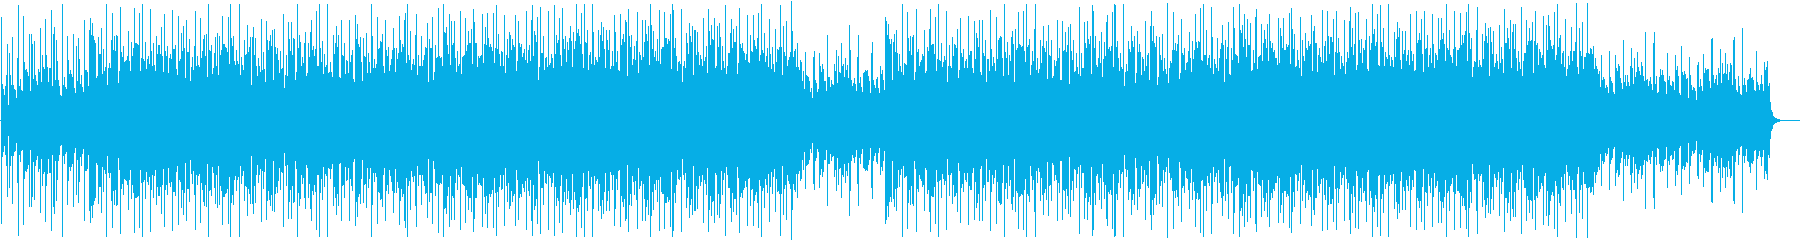 Near future pop with bright sunshine's reproduced waveform